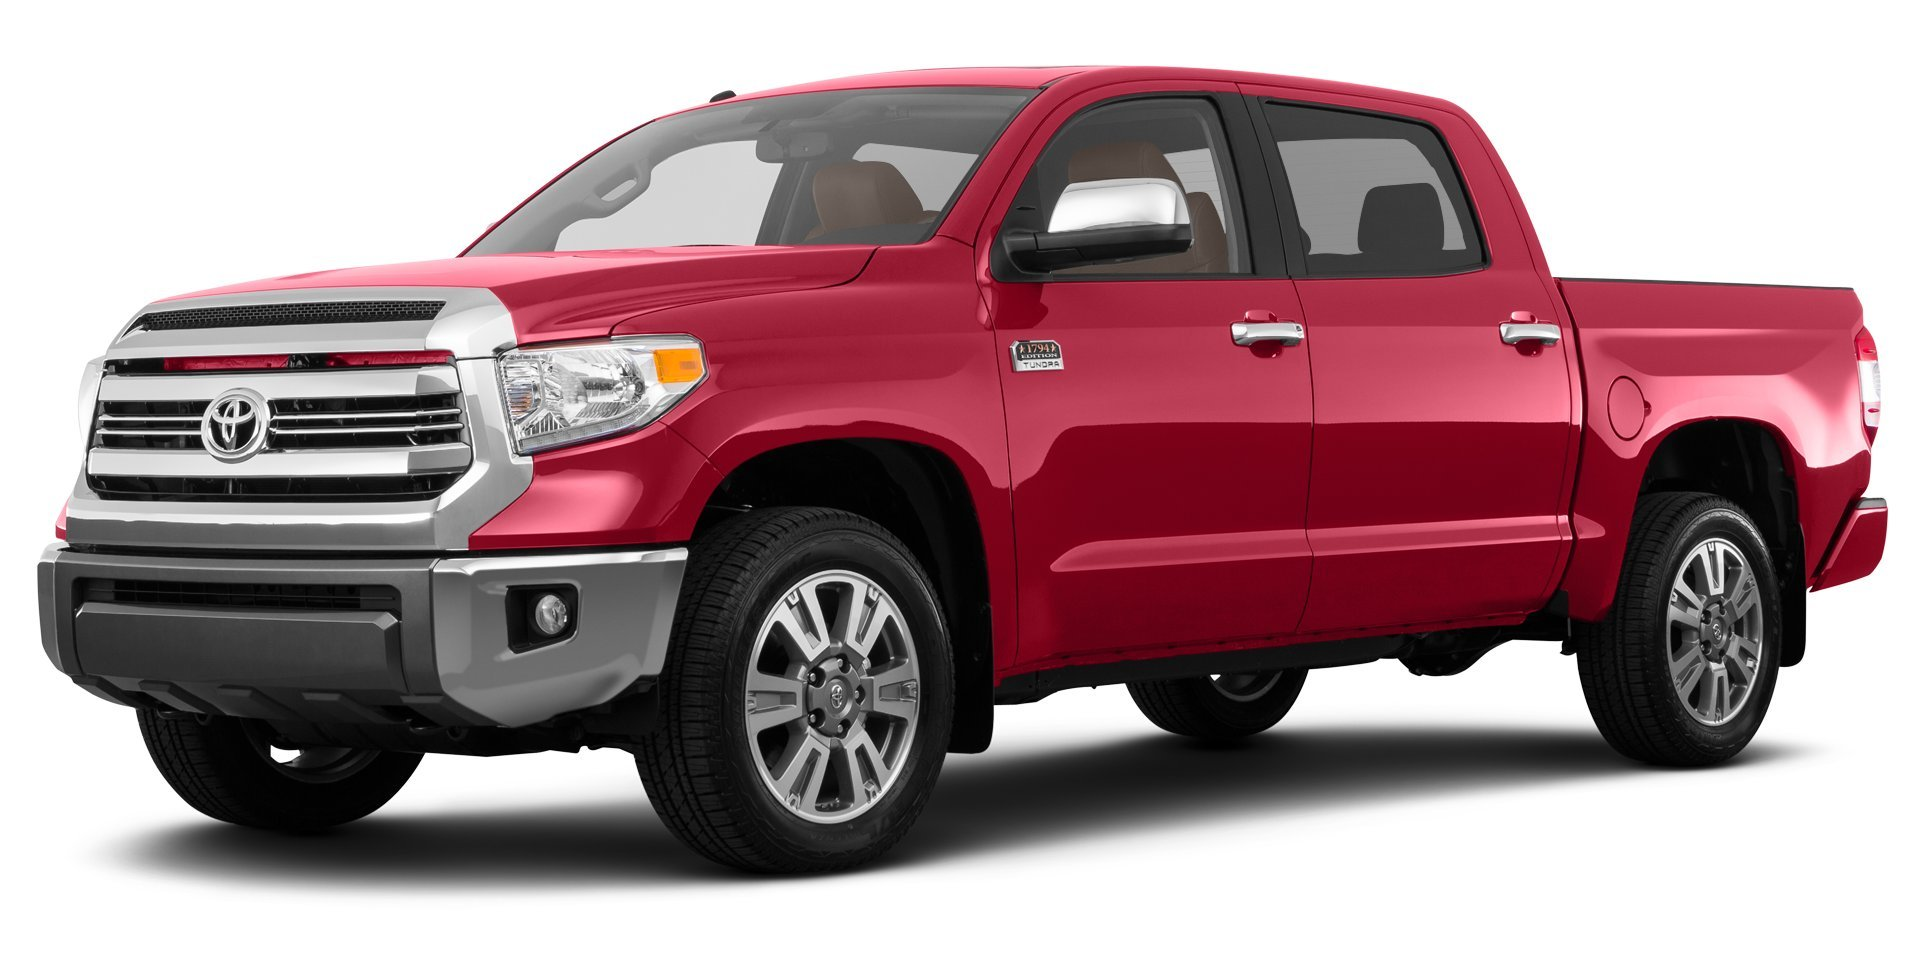 Five Star Chevrolet >> Amazon.com: 2017 Toyota Tundra Reviews, Images, and Specs: Vehicles